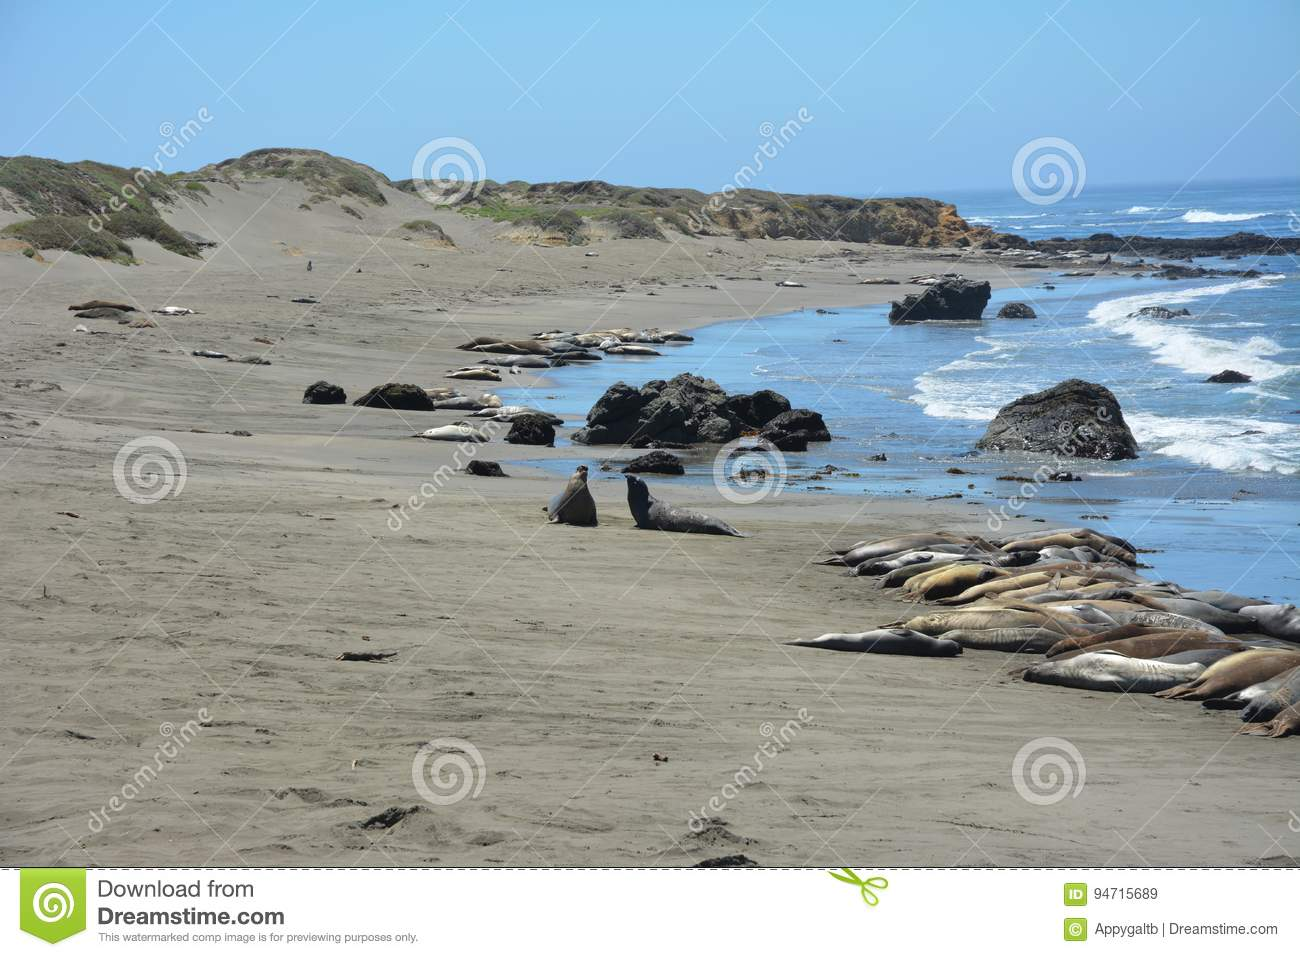 San Simeon Elephant Seals - June